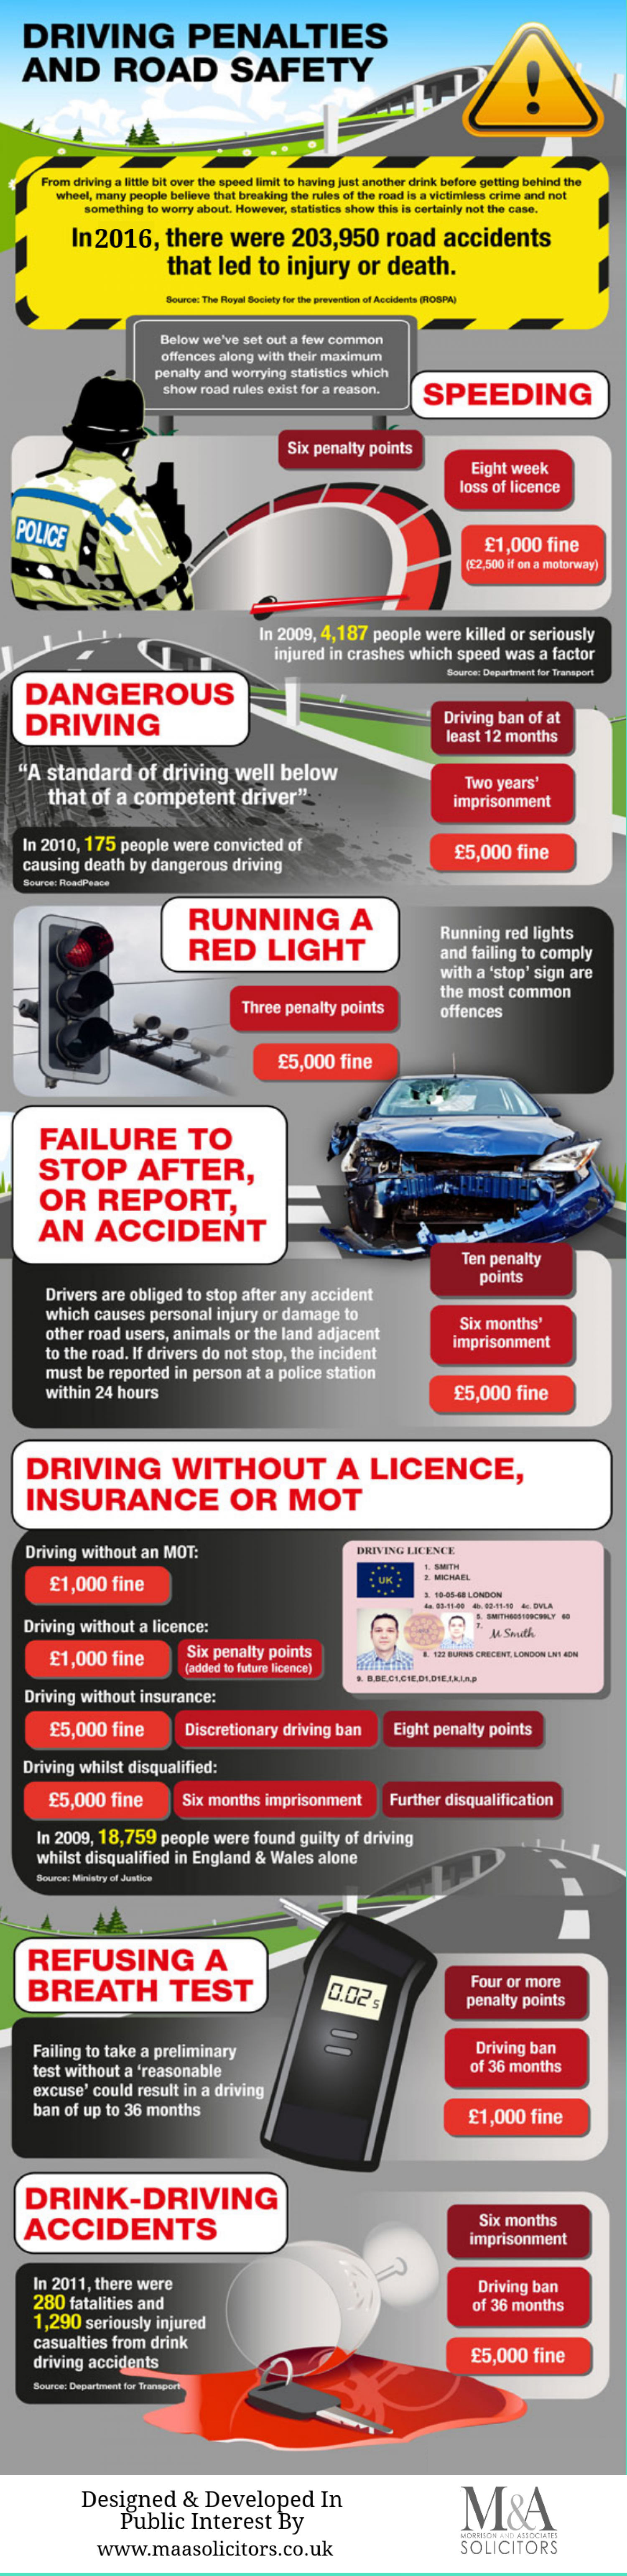 Driving Penalties And Road Safety Infographic